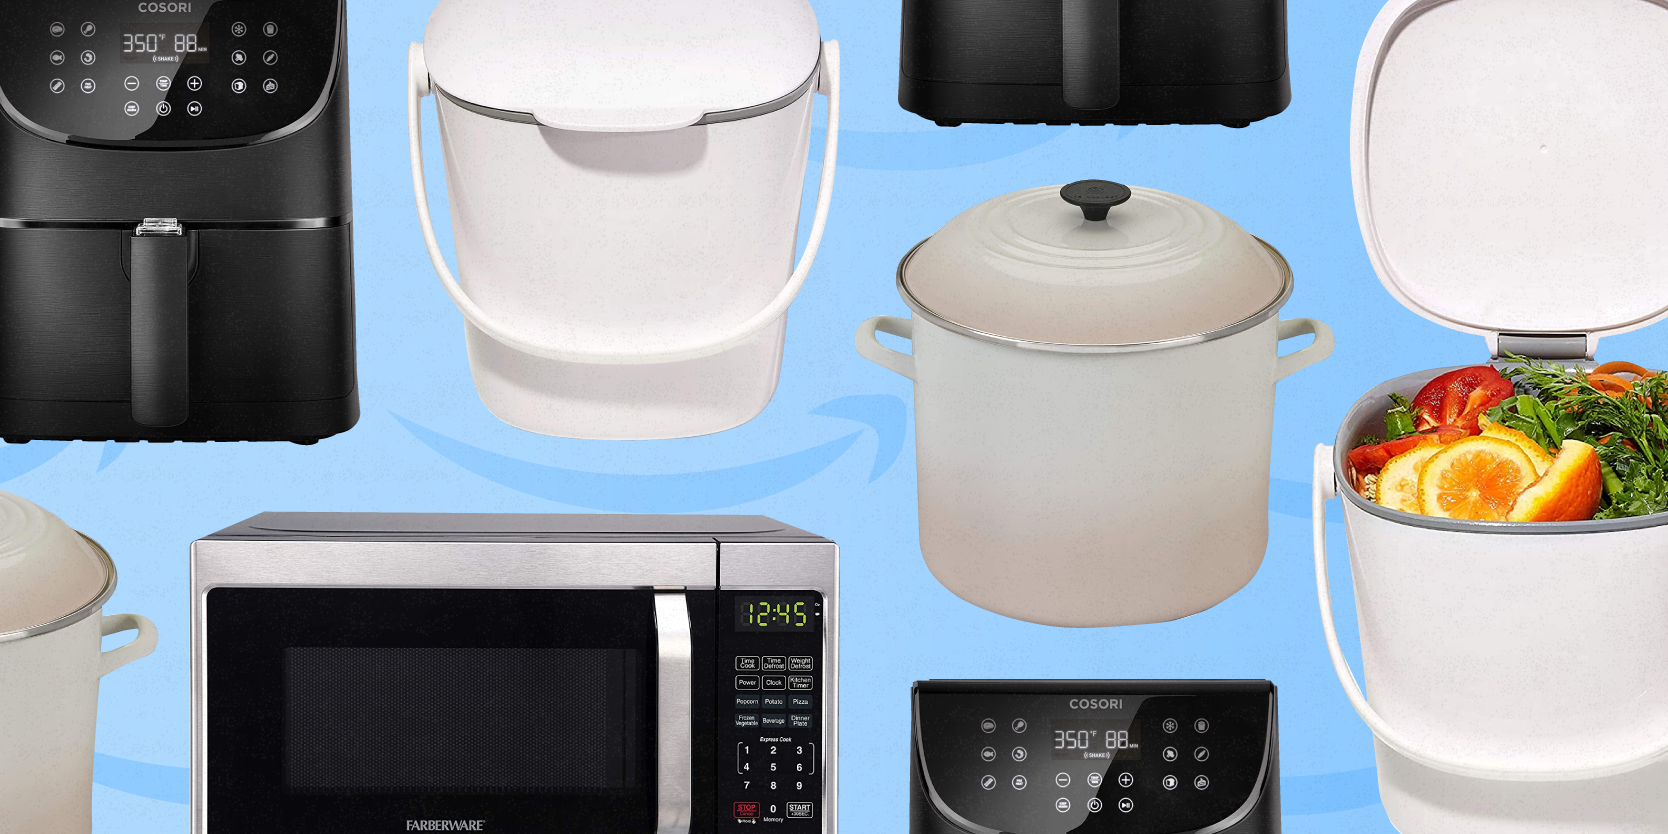 The best Amazon Prime Day 2021 kitchen deals, including $200 off Le Creuset cookware